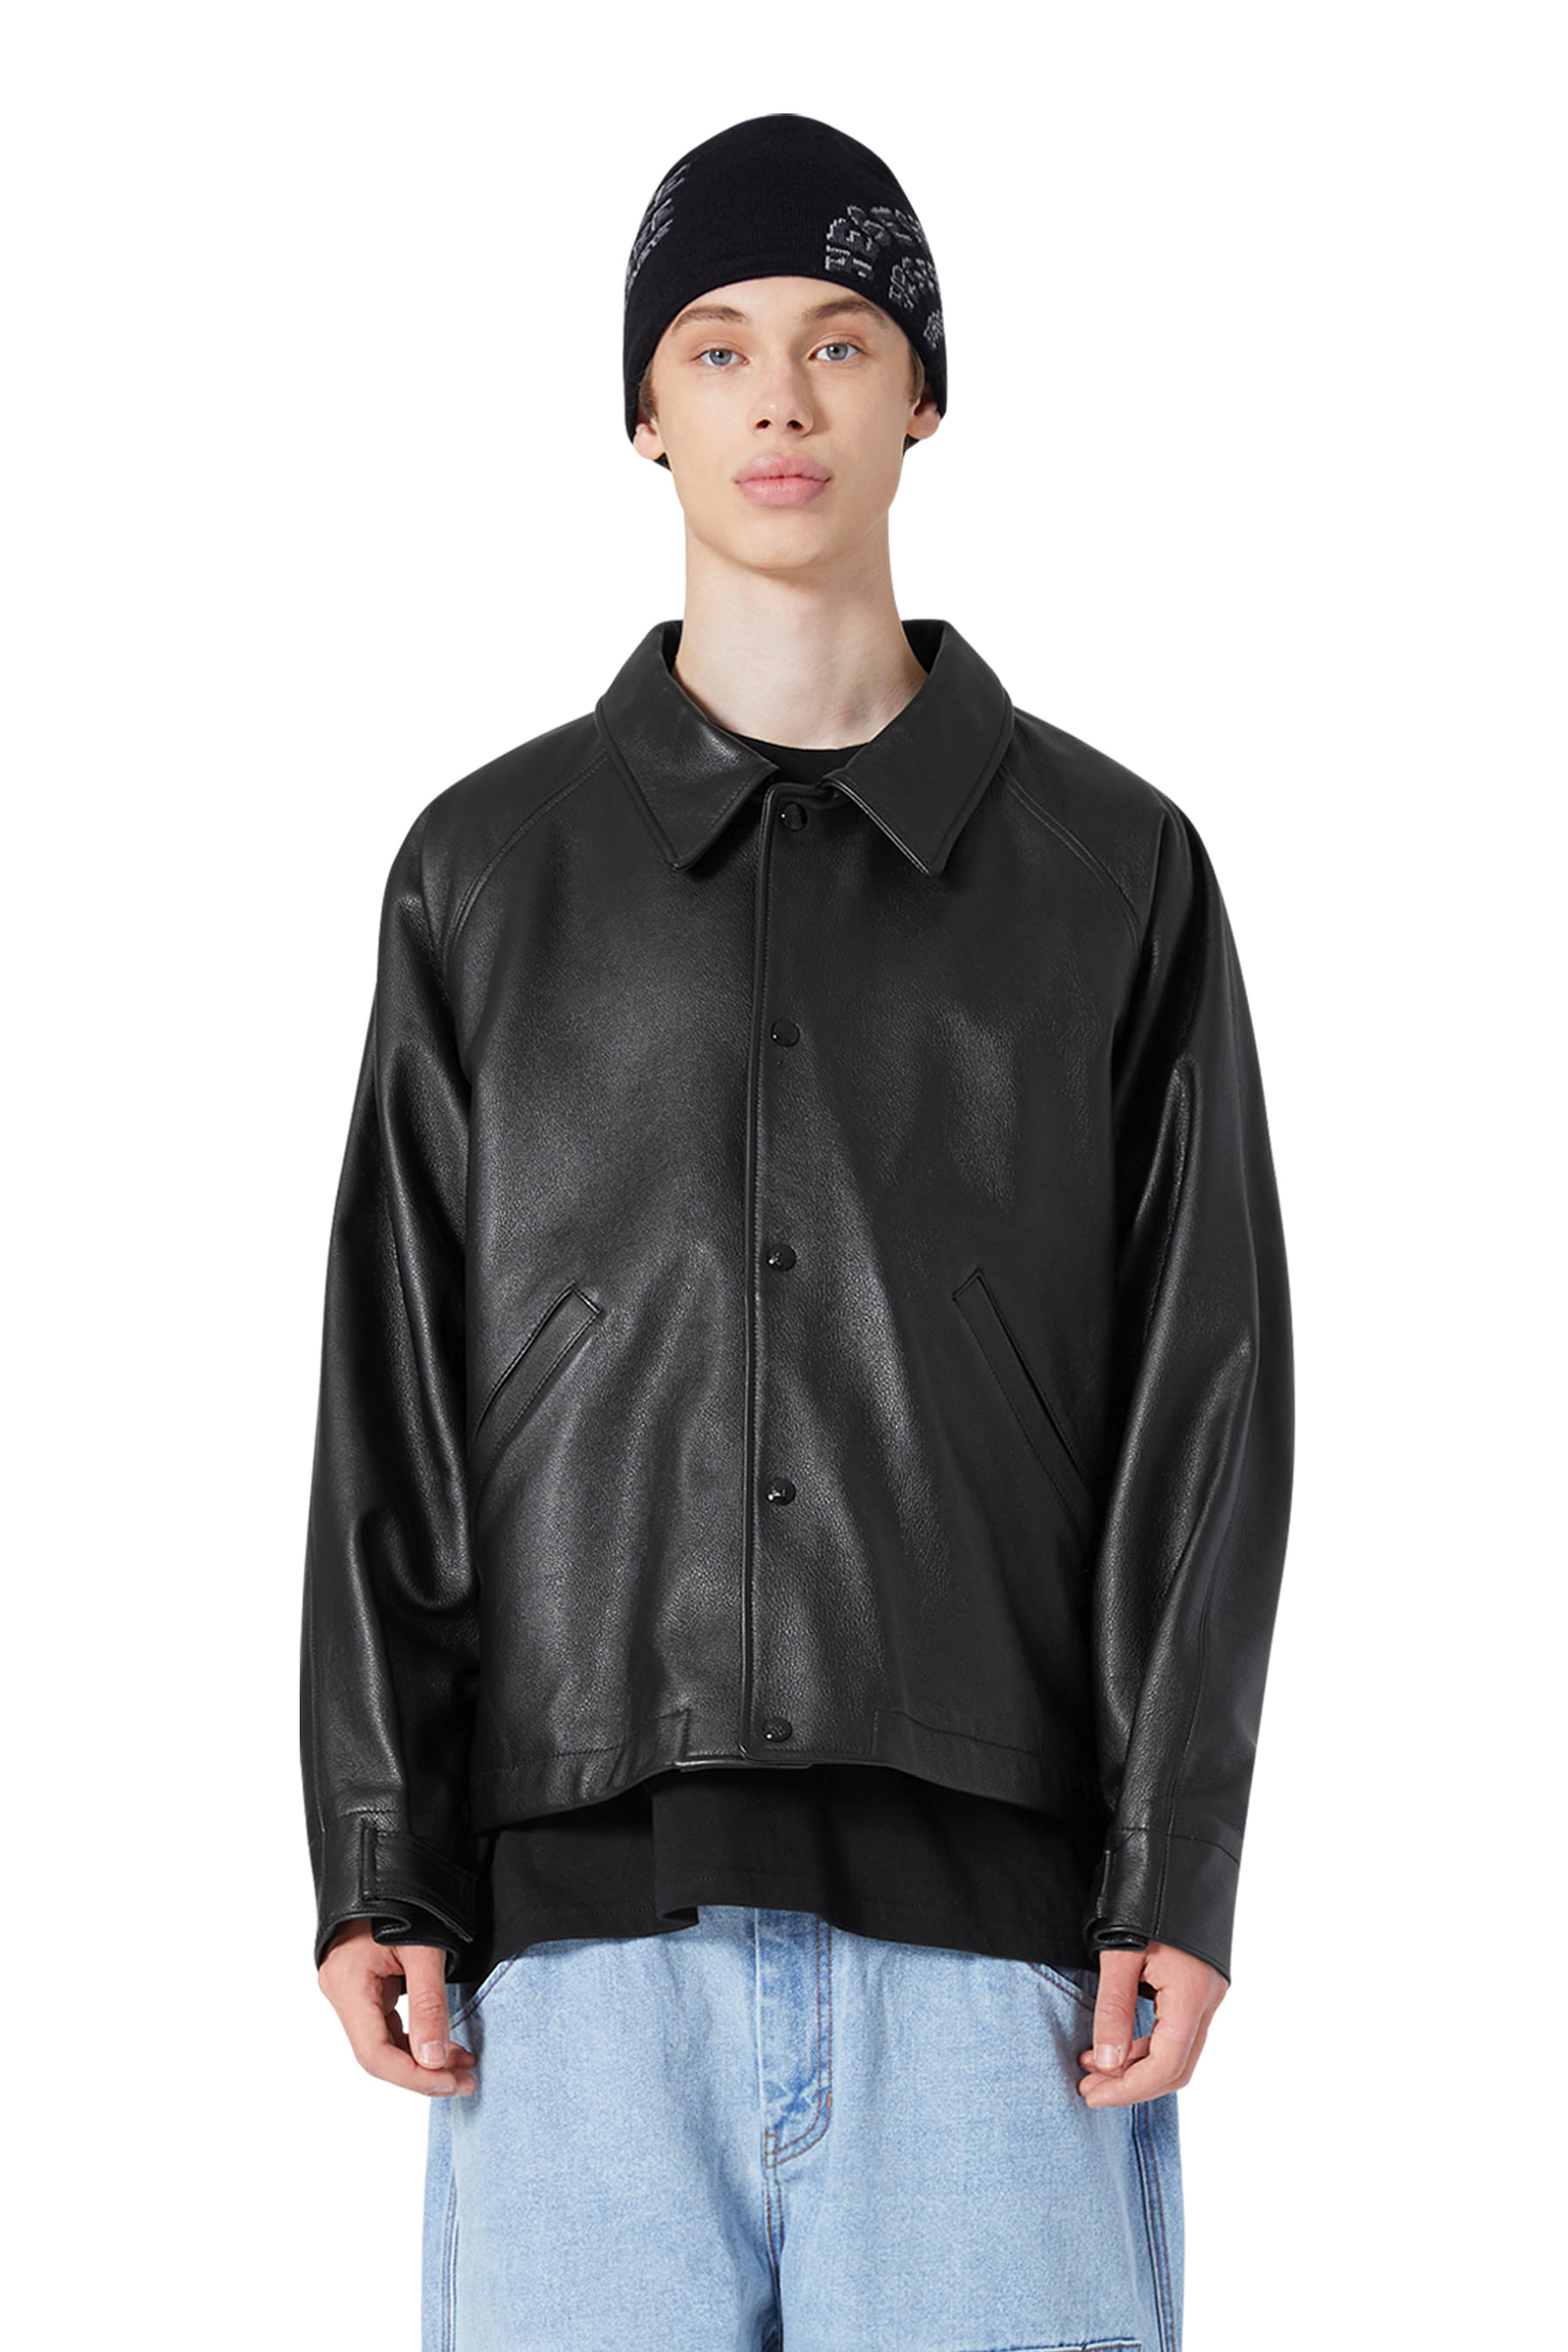 Y.E.S LEATHER JACKET Black